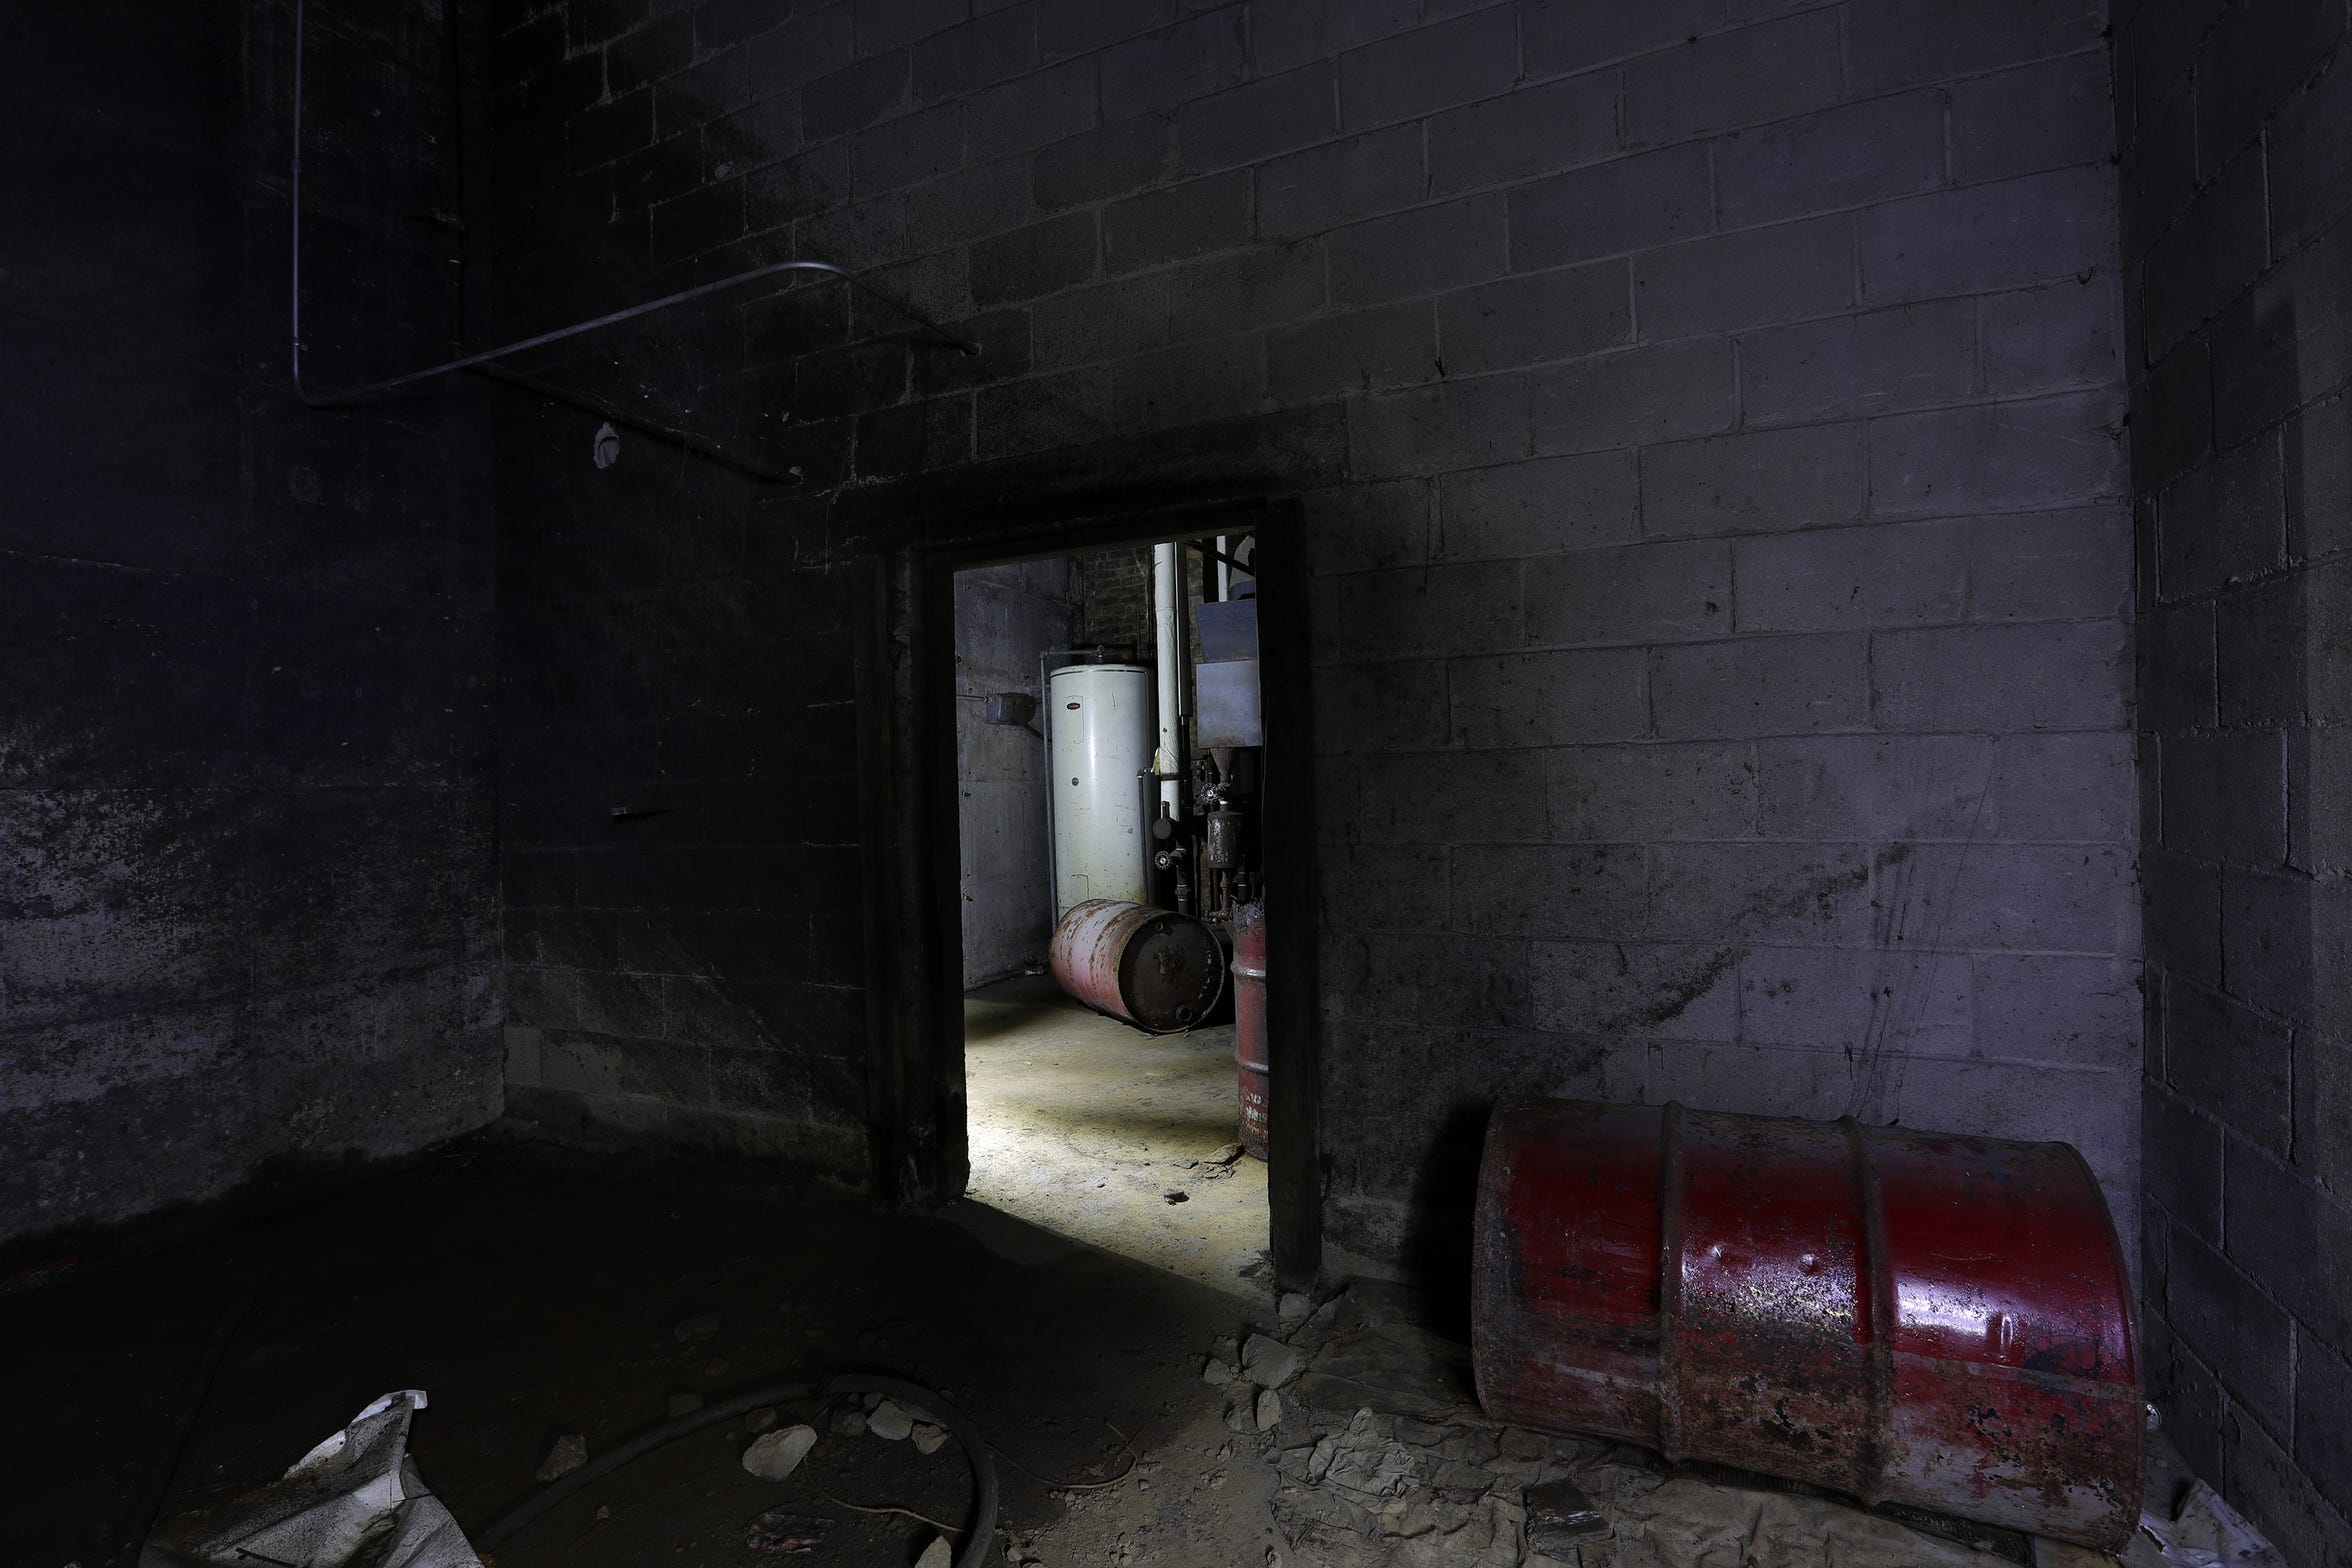 There are two basements under Katsu Ya in downtown Appleton. Combined, they reach about 35 feet into the earth.